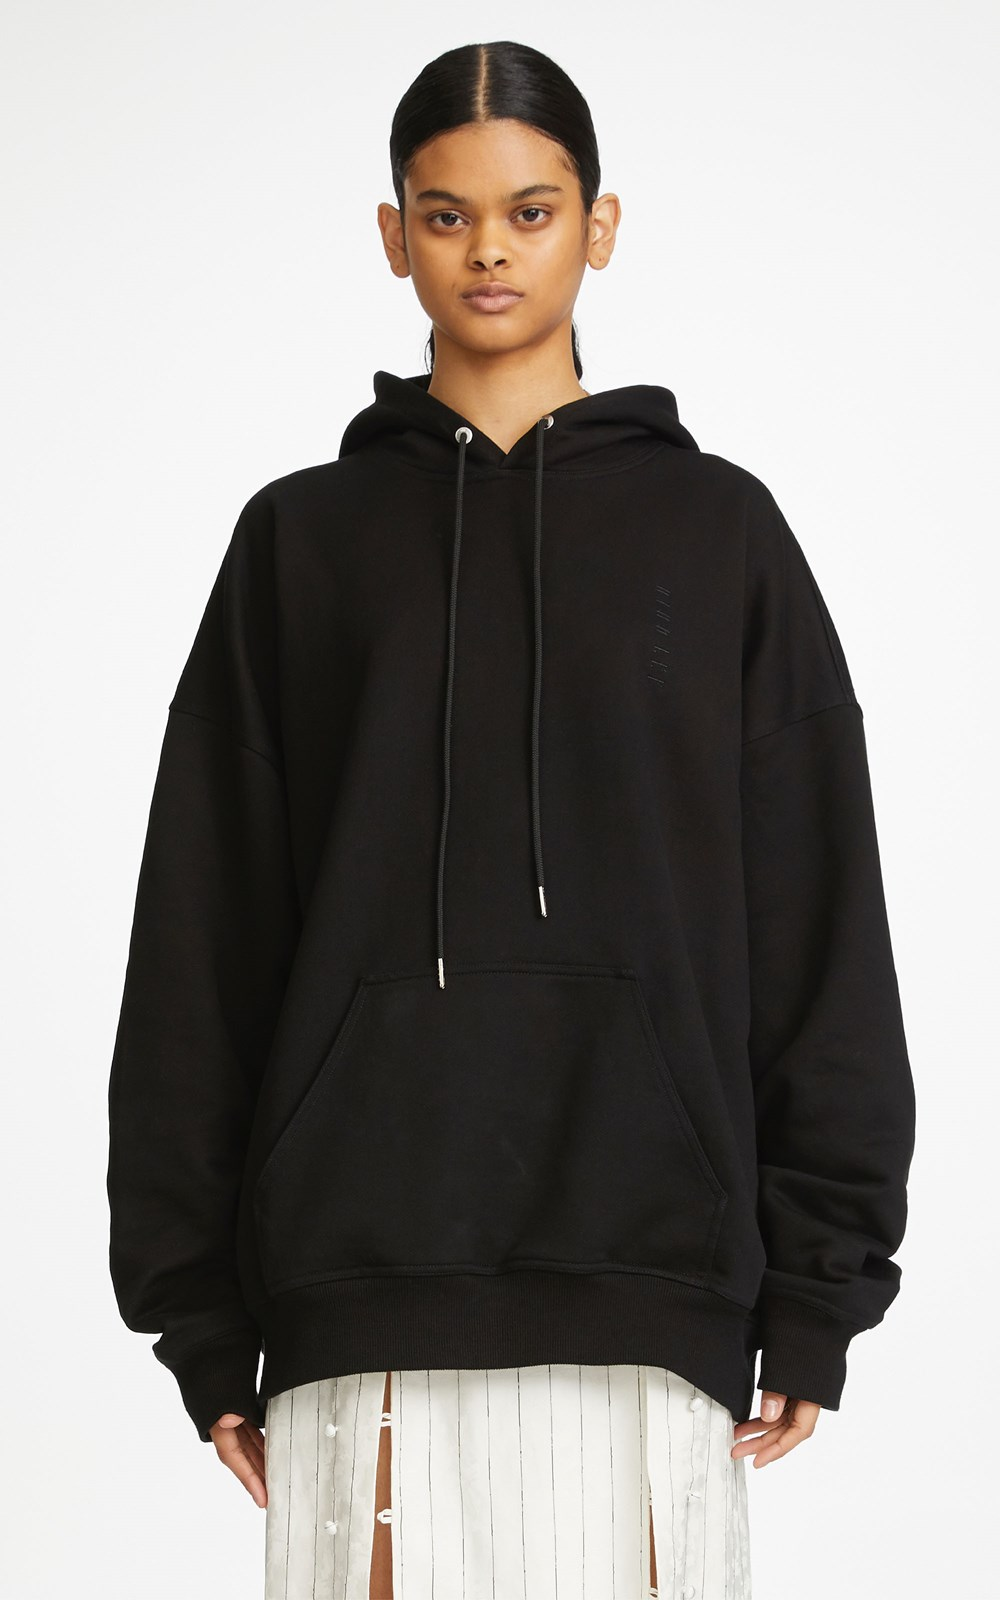 New   | EMBROIDERED LOGO OVERSIZED HOODIE